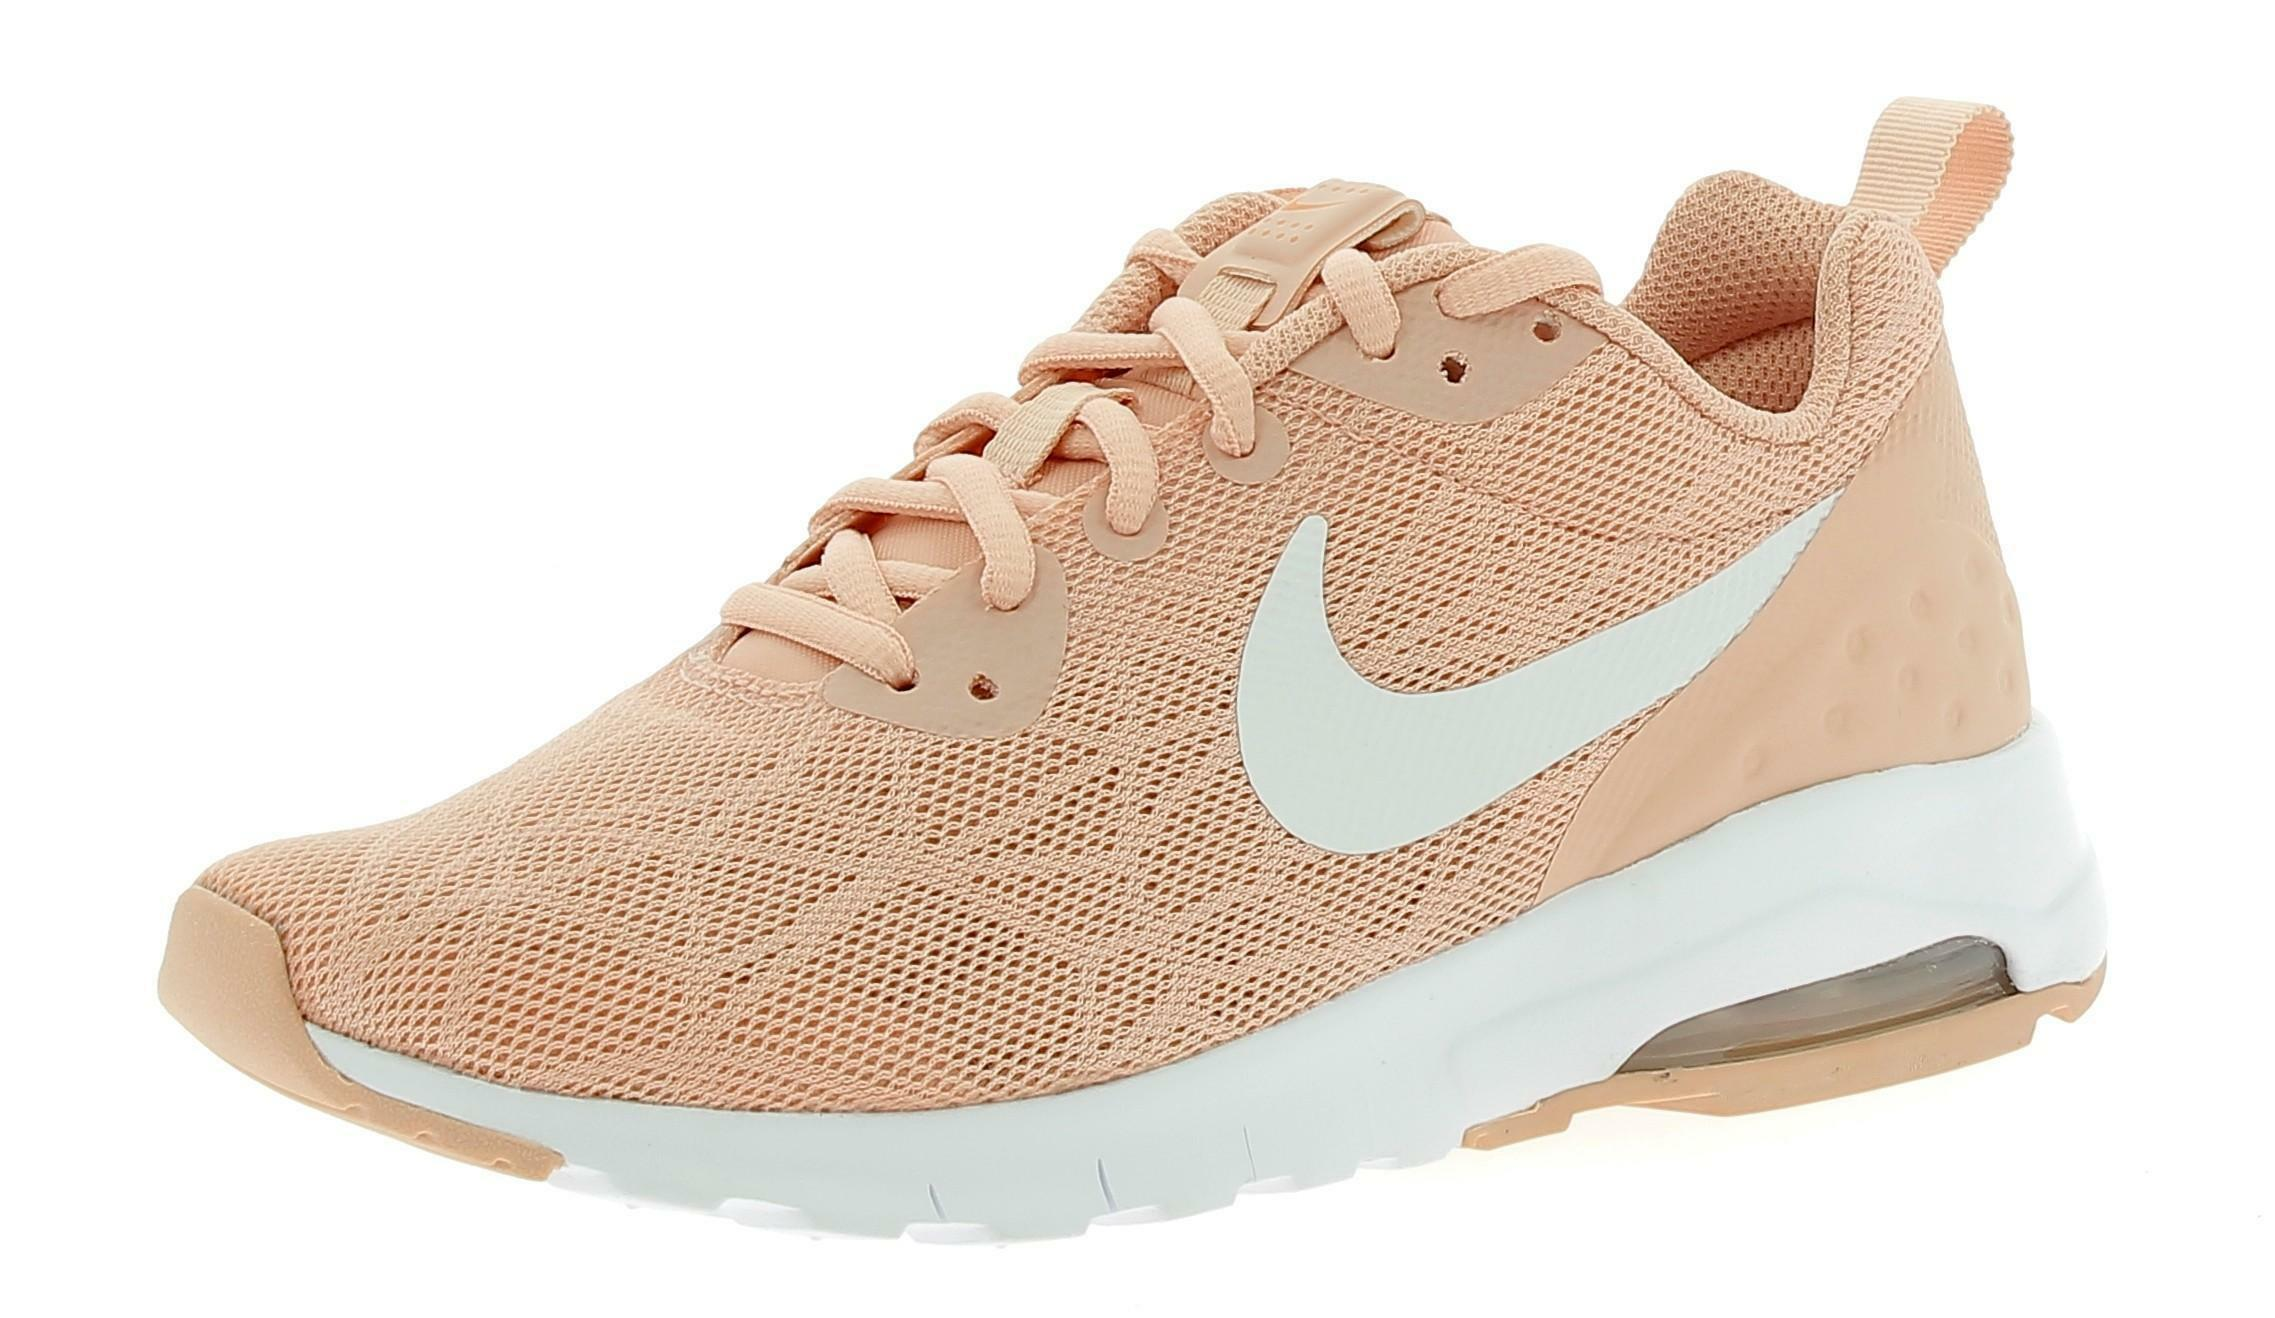 the best attitude 231fd 3bfb4 Details about Nike Air Max Motion Women s Sports Shoes Pink 844895605